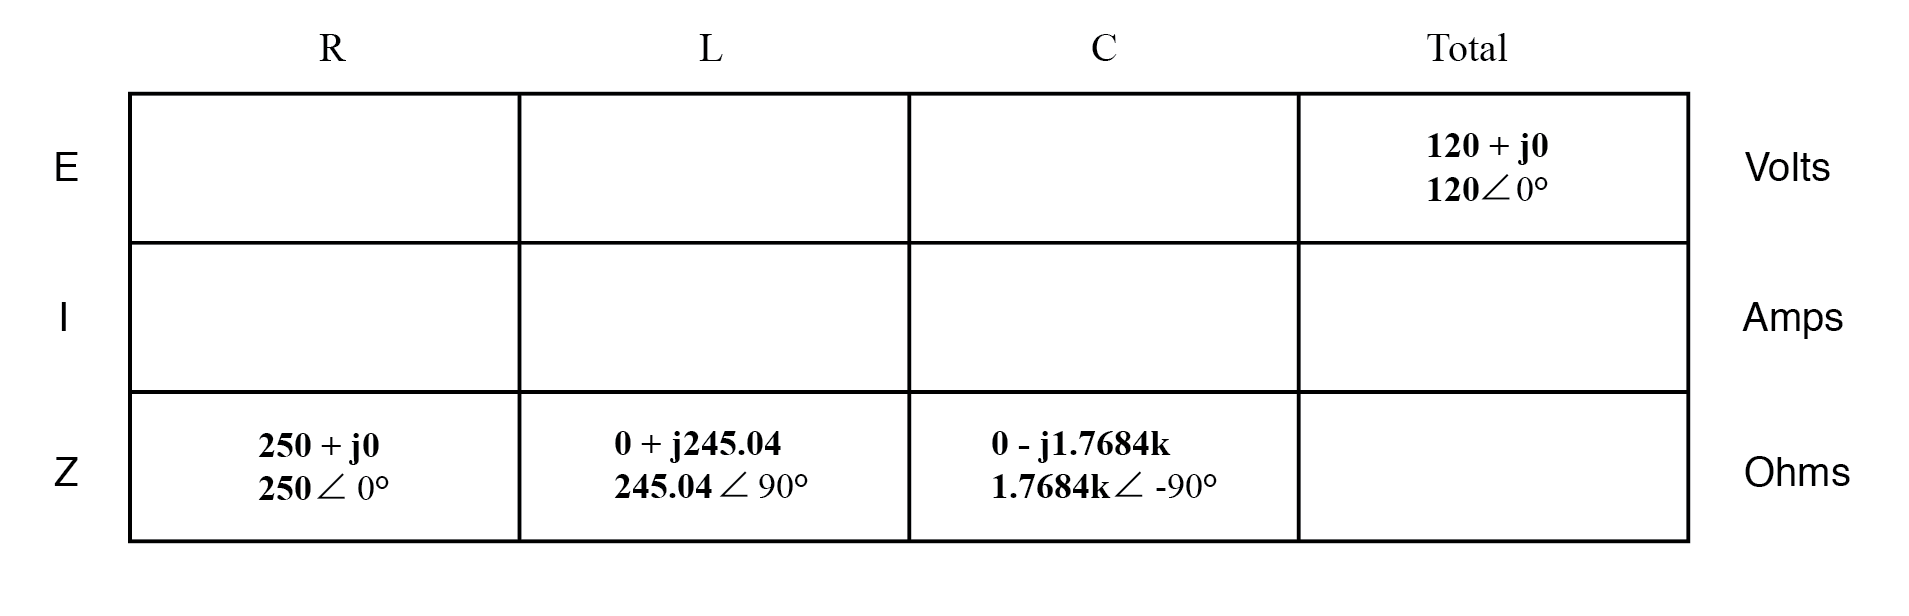 components values express as impedance image 1